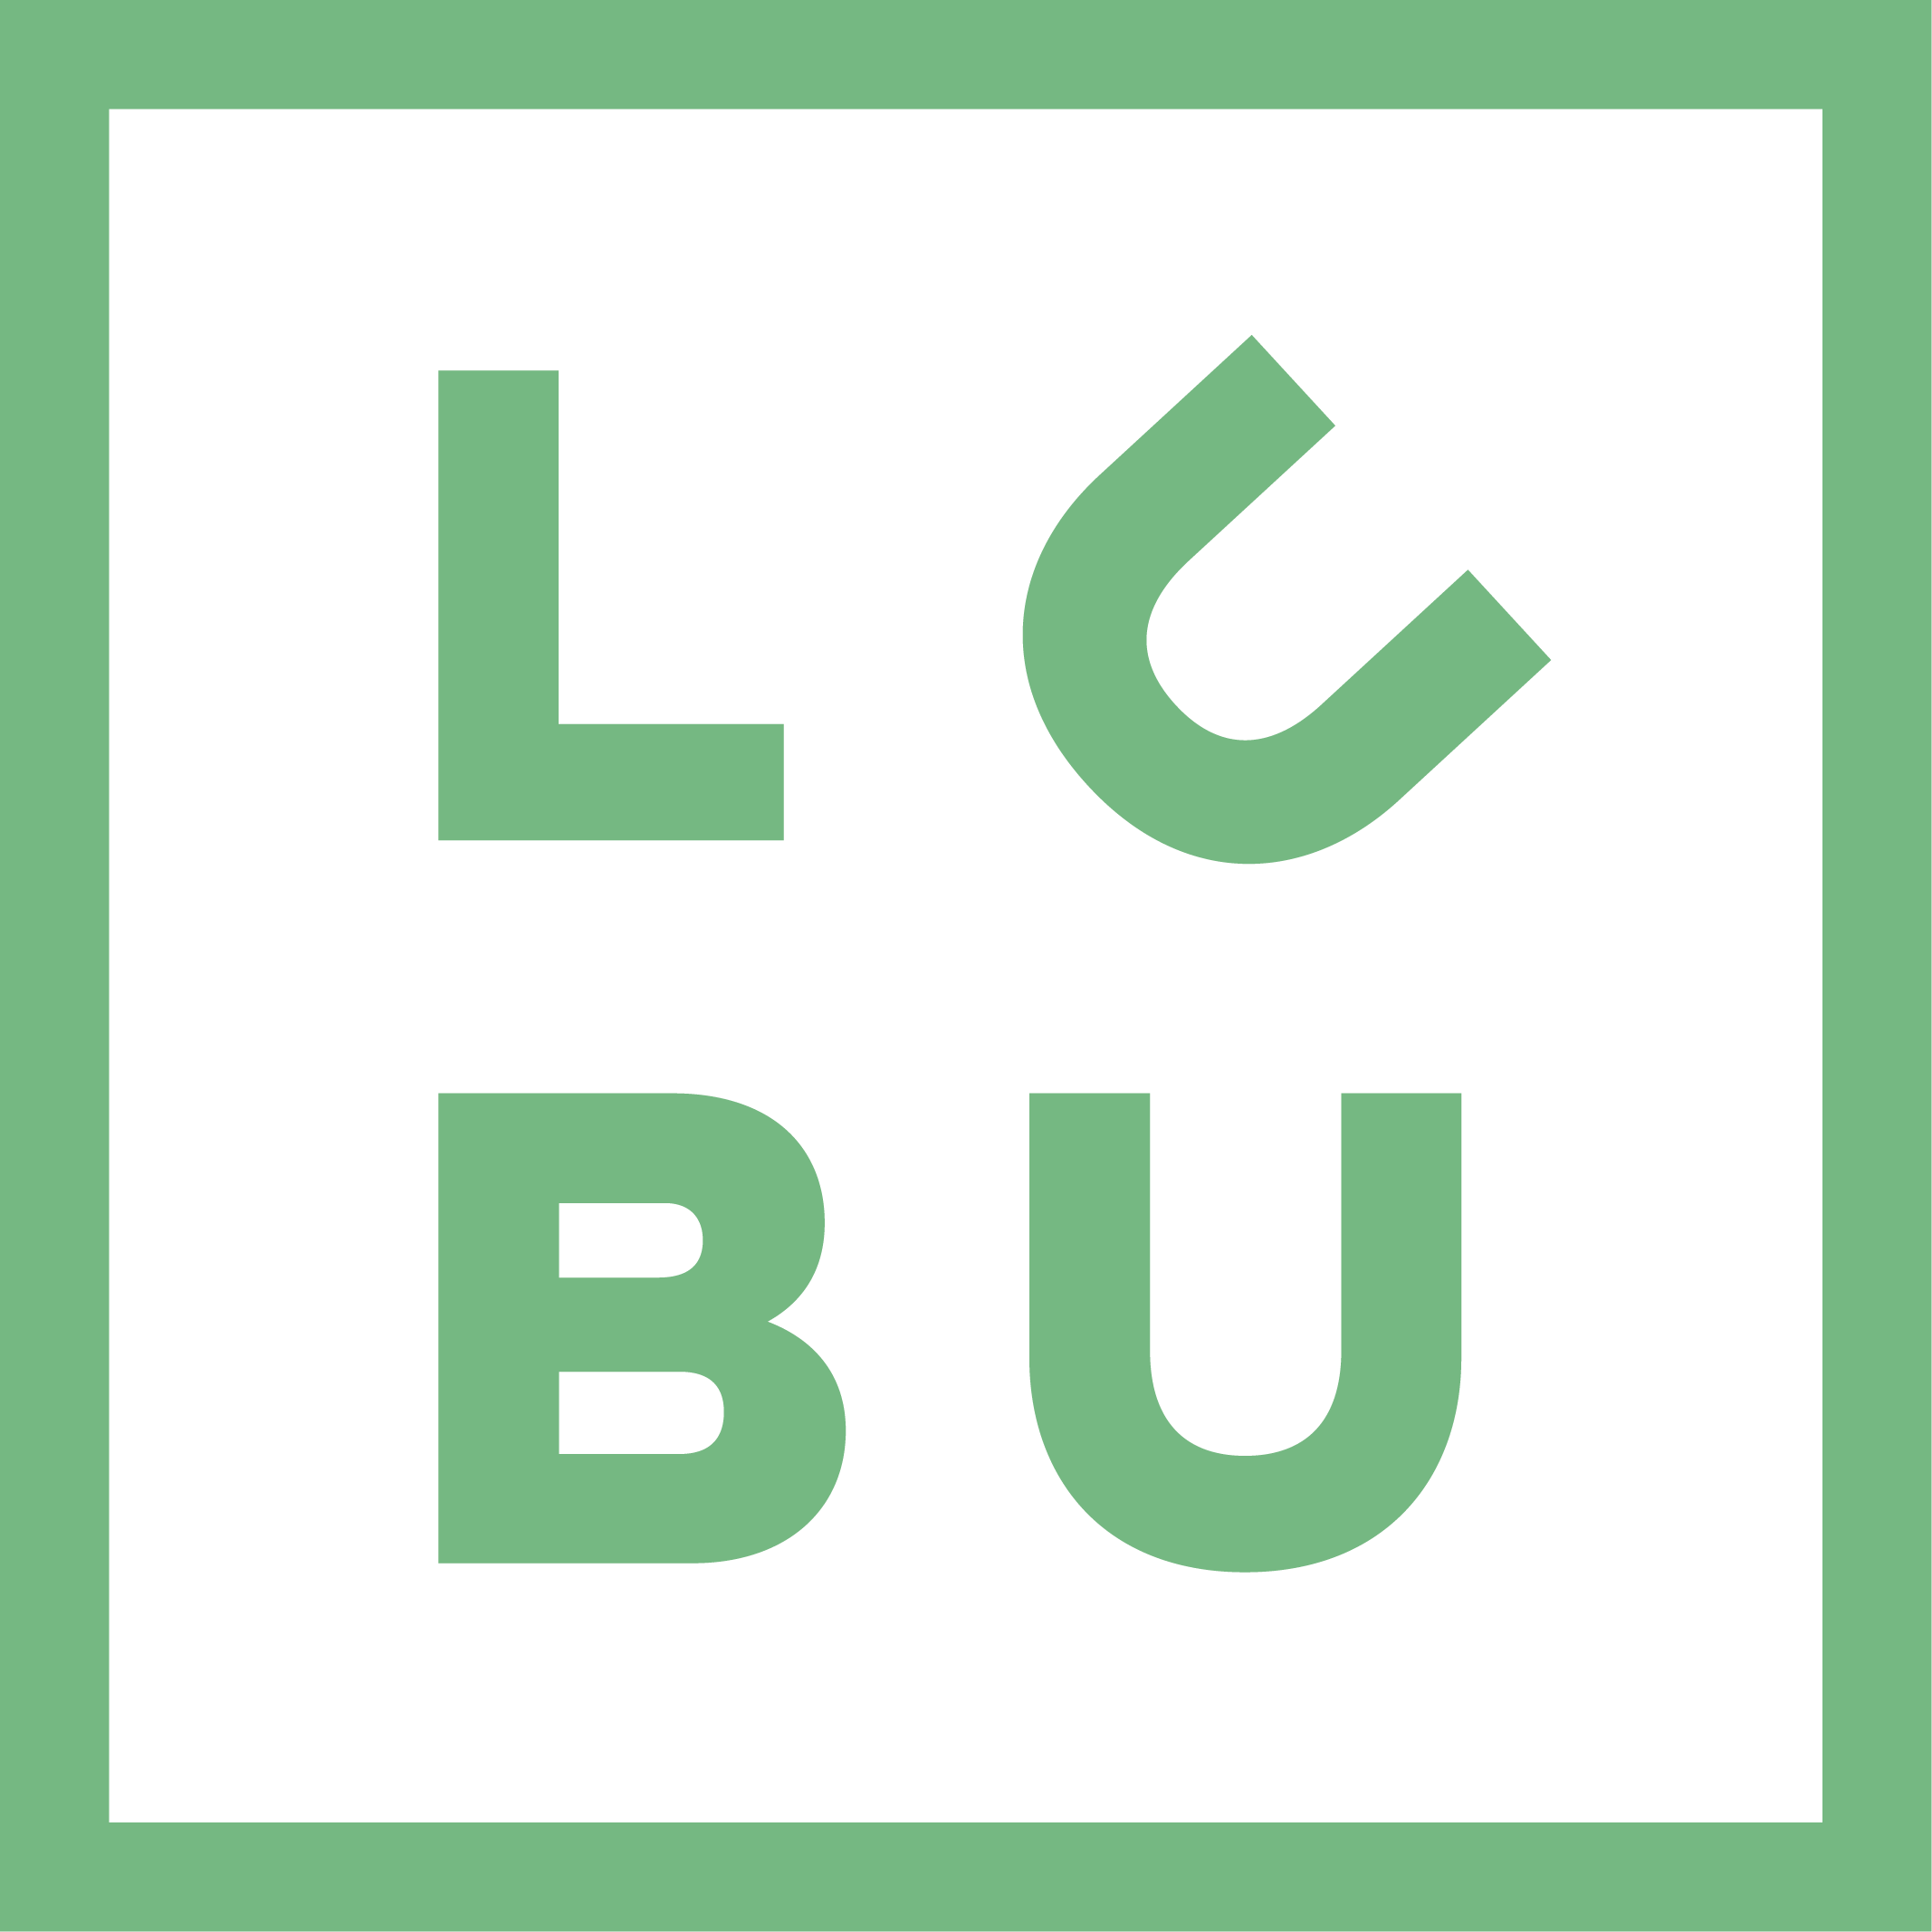 LuBu | LunchBuddies